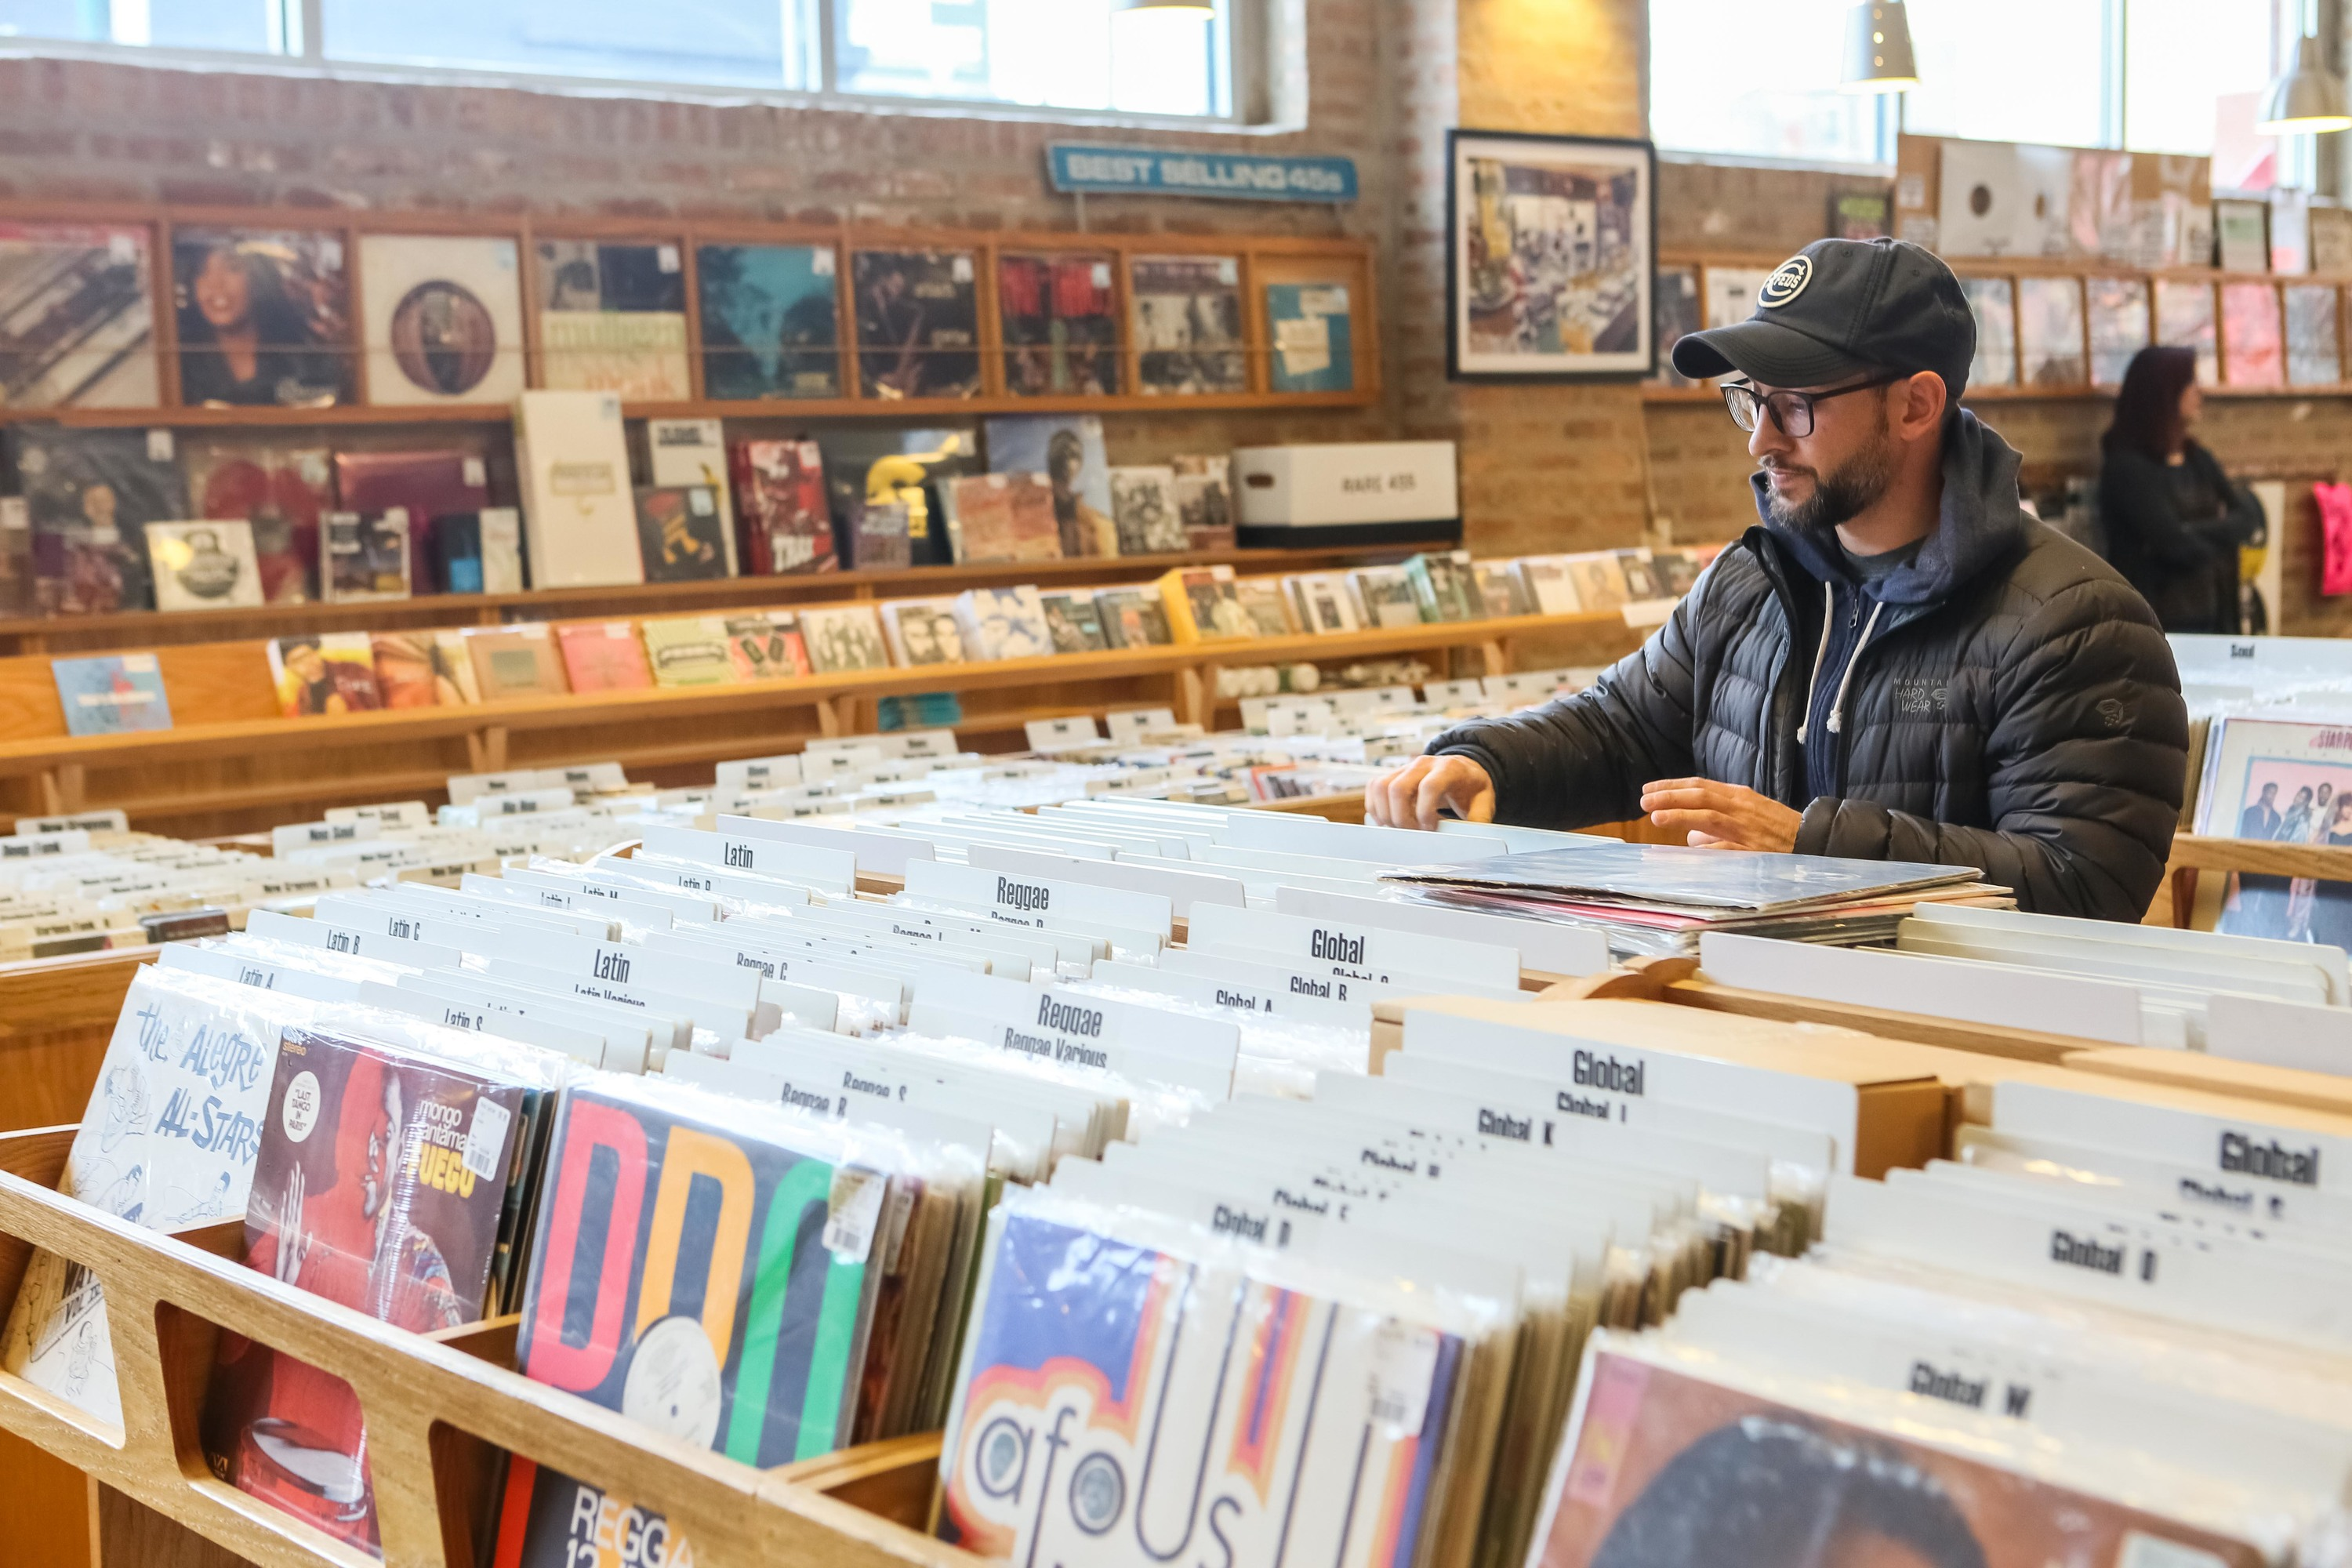 19 Best Record Stores in Chicago for Vinyl, CDs and More